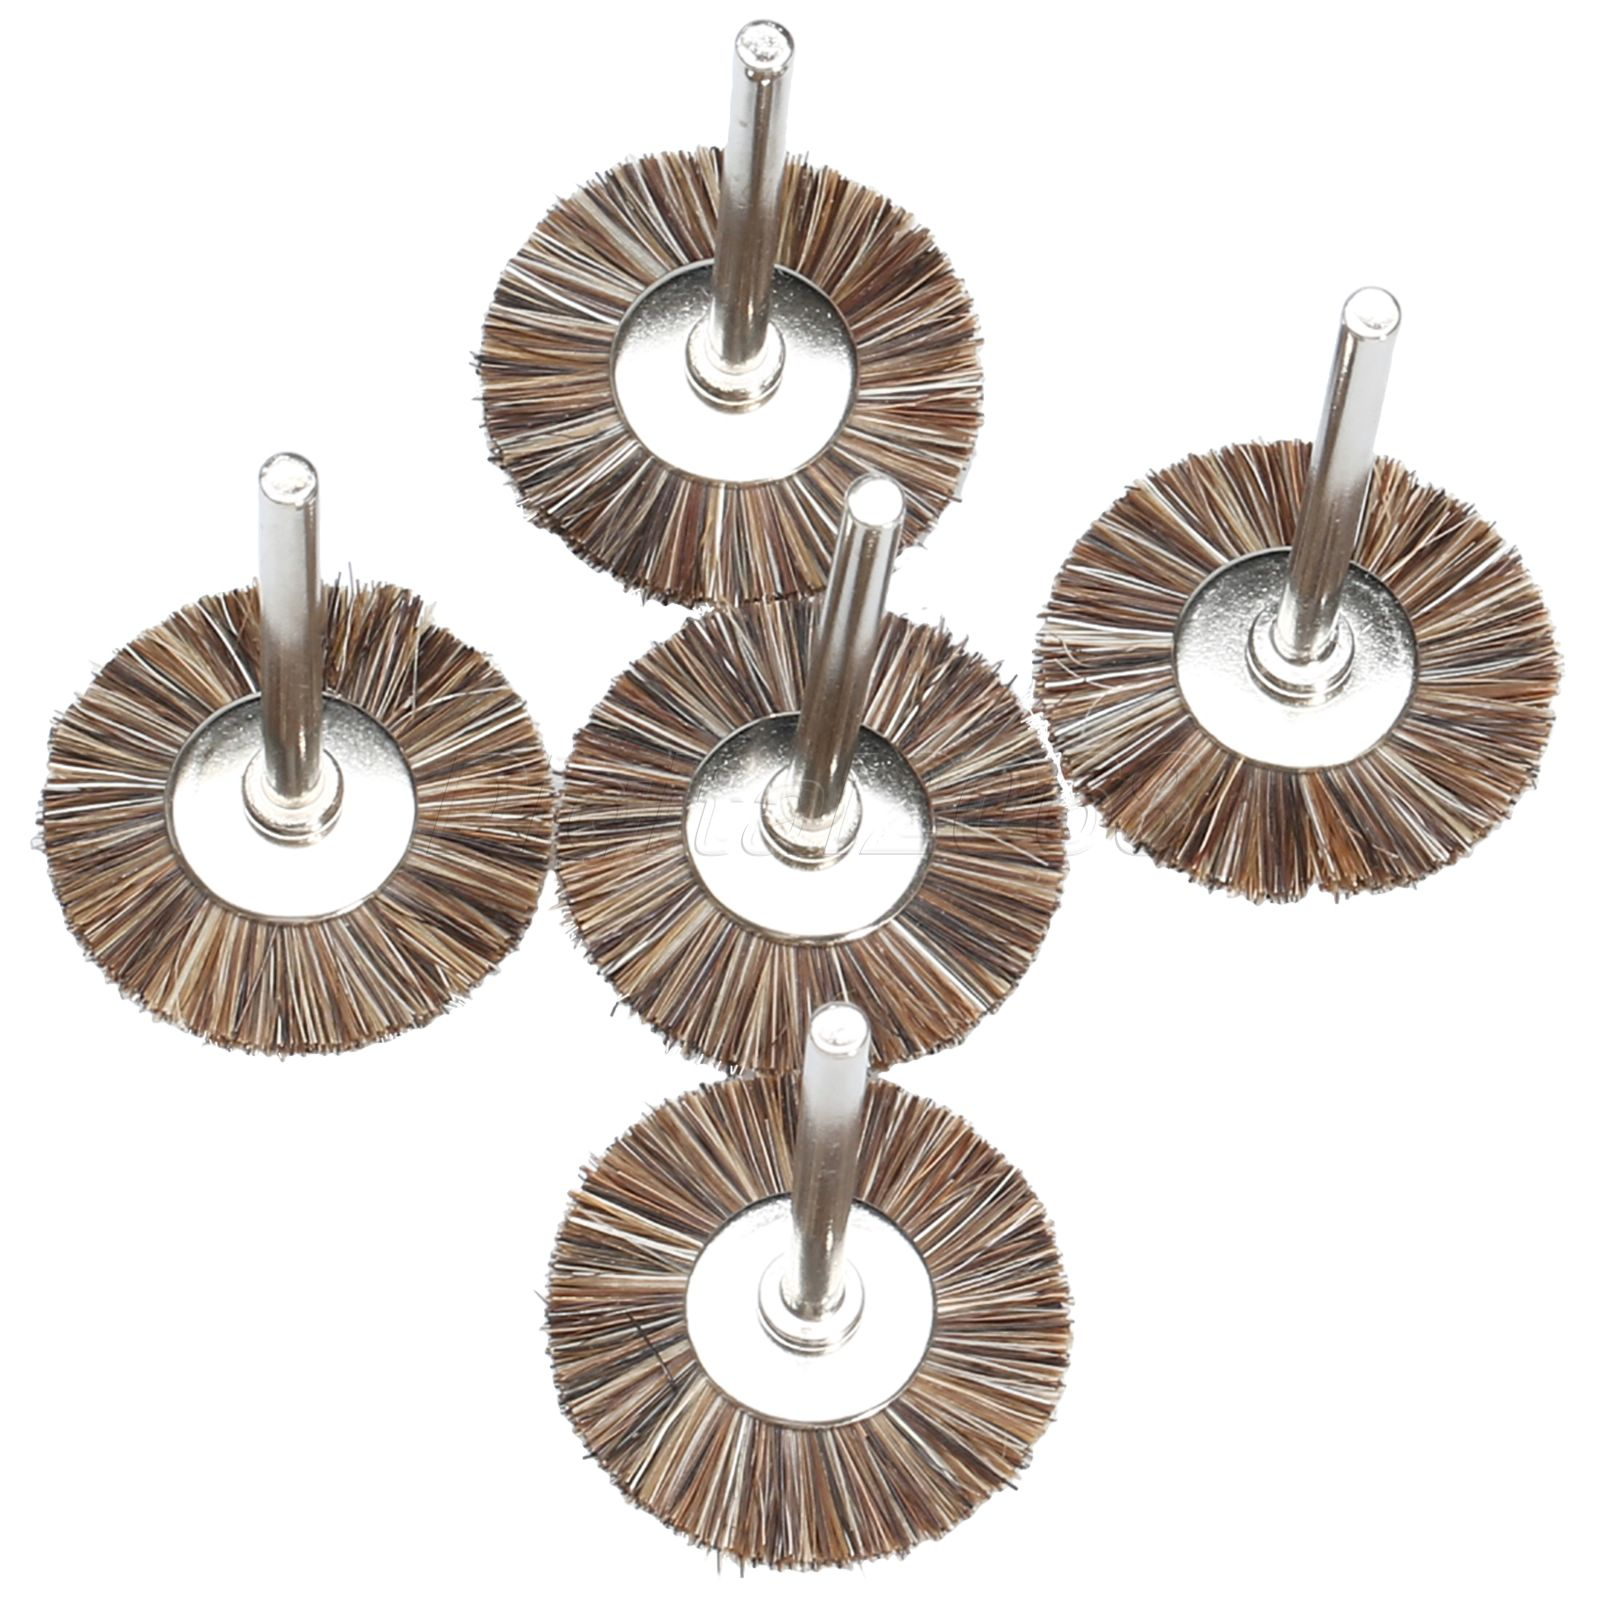 5 Pcs Silver Tone Shank Brown Fibre Grinding Polishing Buffing Bur Brush Wheel Dremel Rotary Tool Brushes